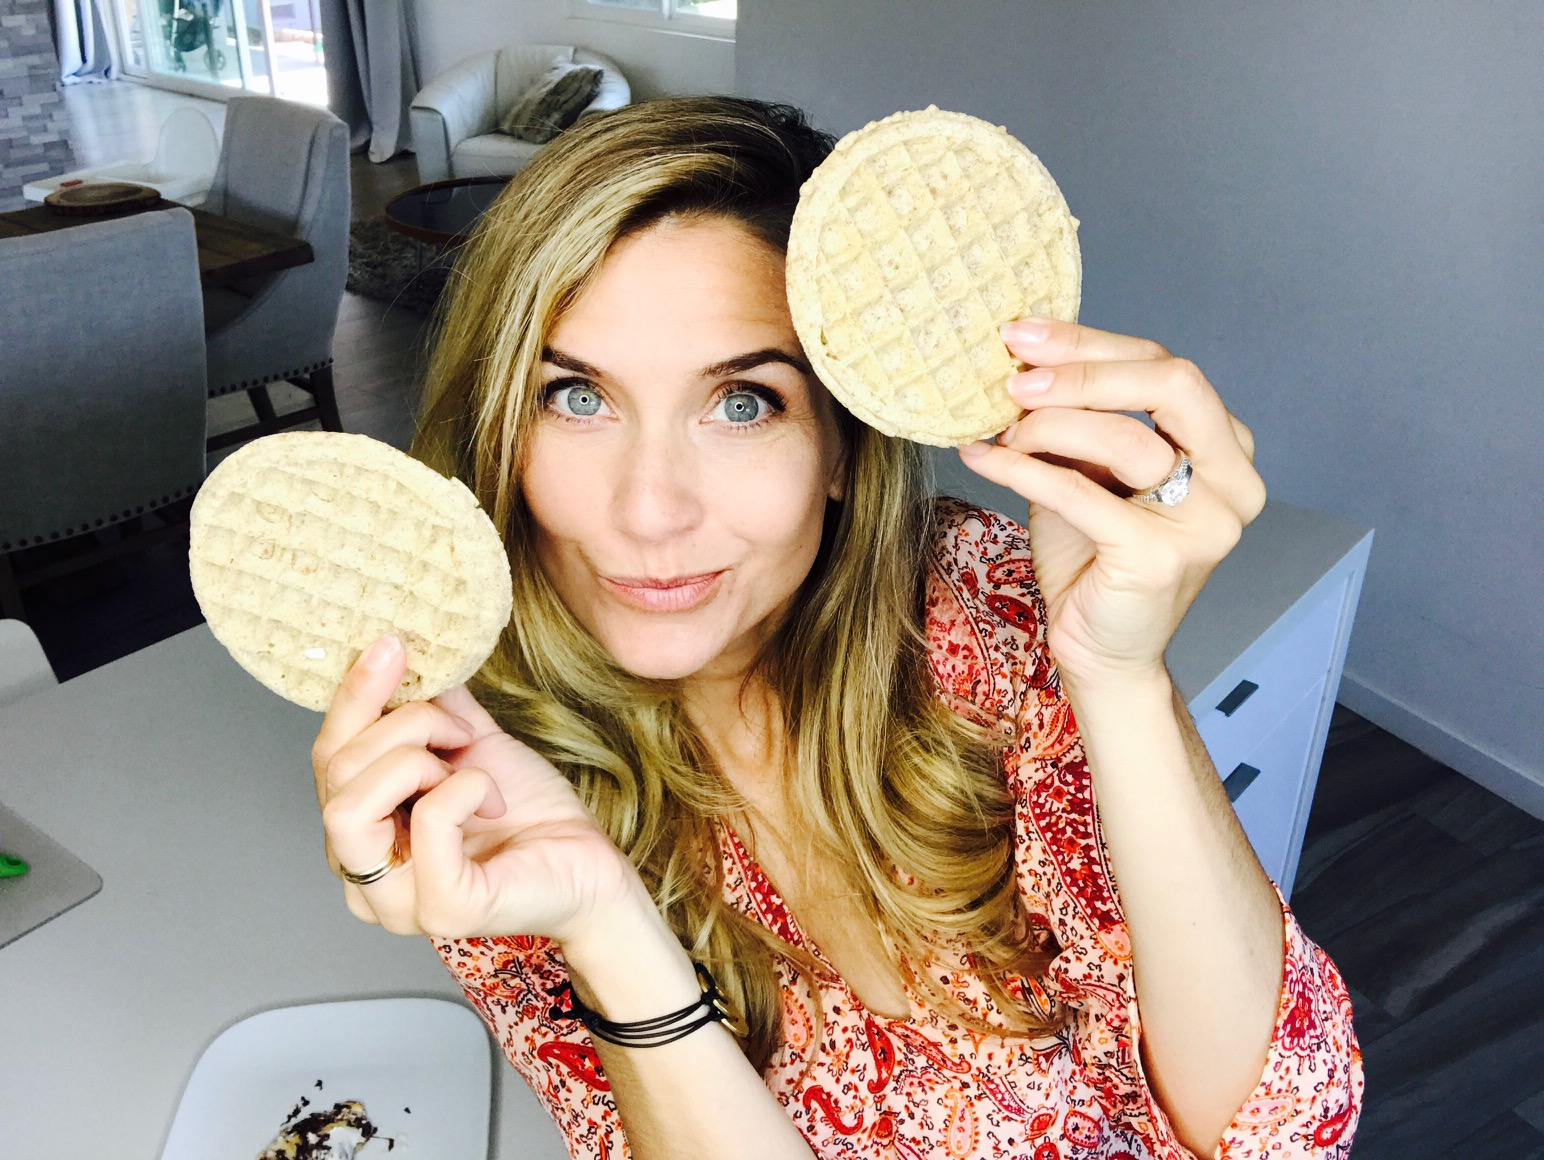 Grab a waffle and let's get camping! Sort of.... Indoor s'mores at their finest.